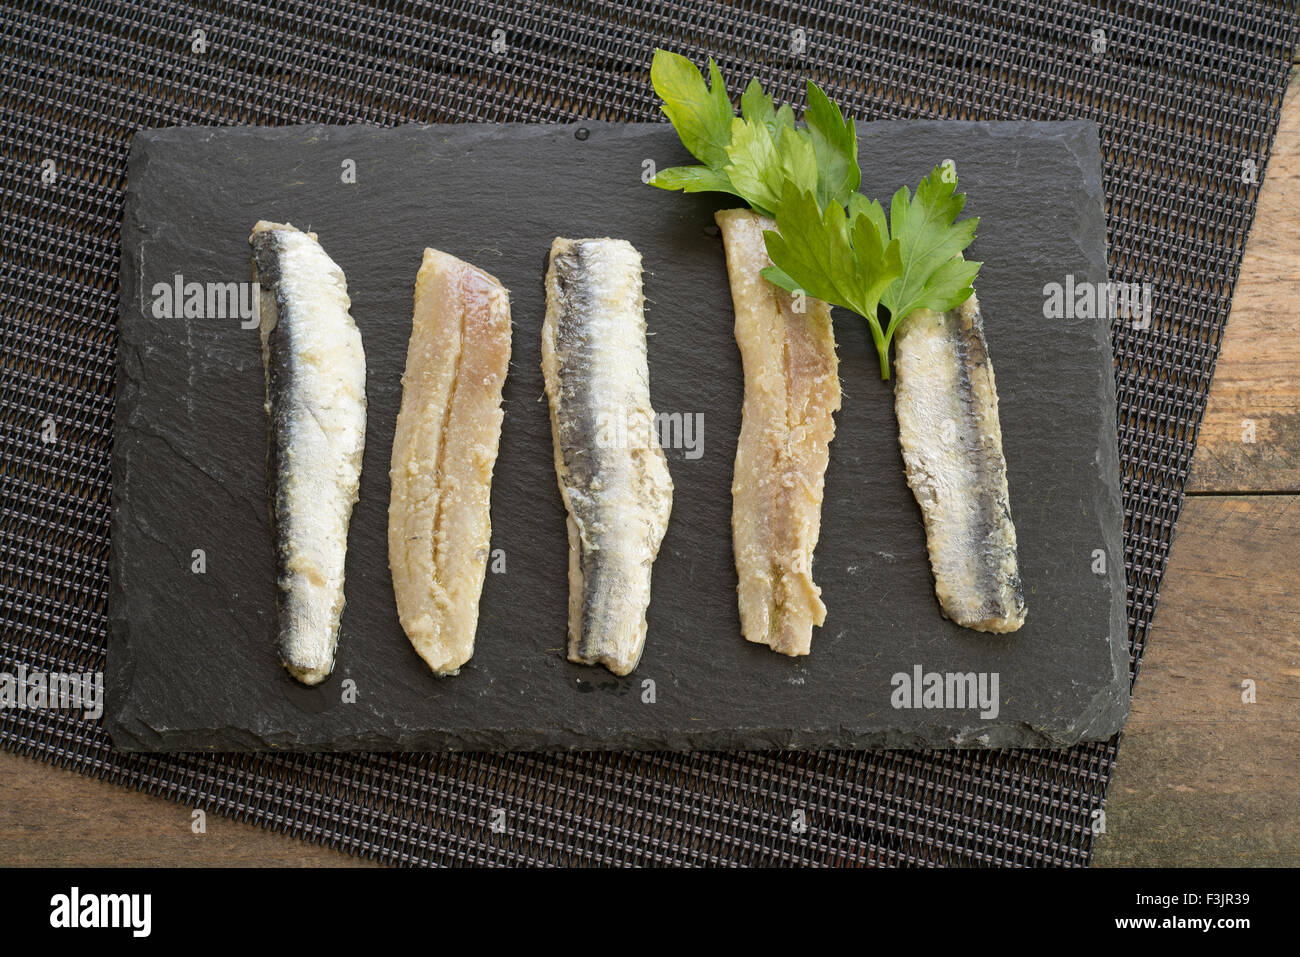 anchovies; parsley; olive oil - Stock Image